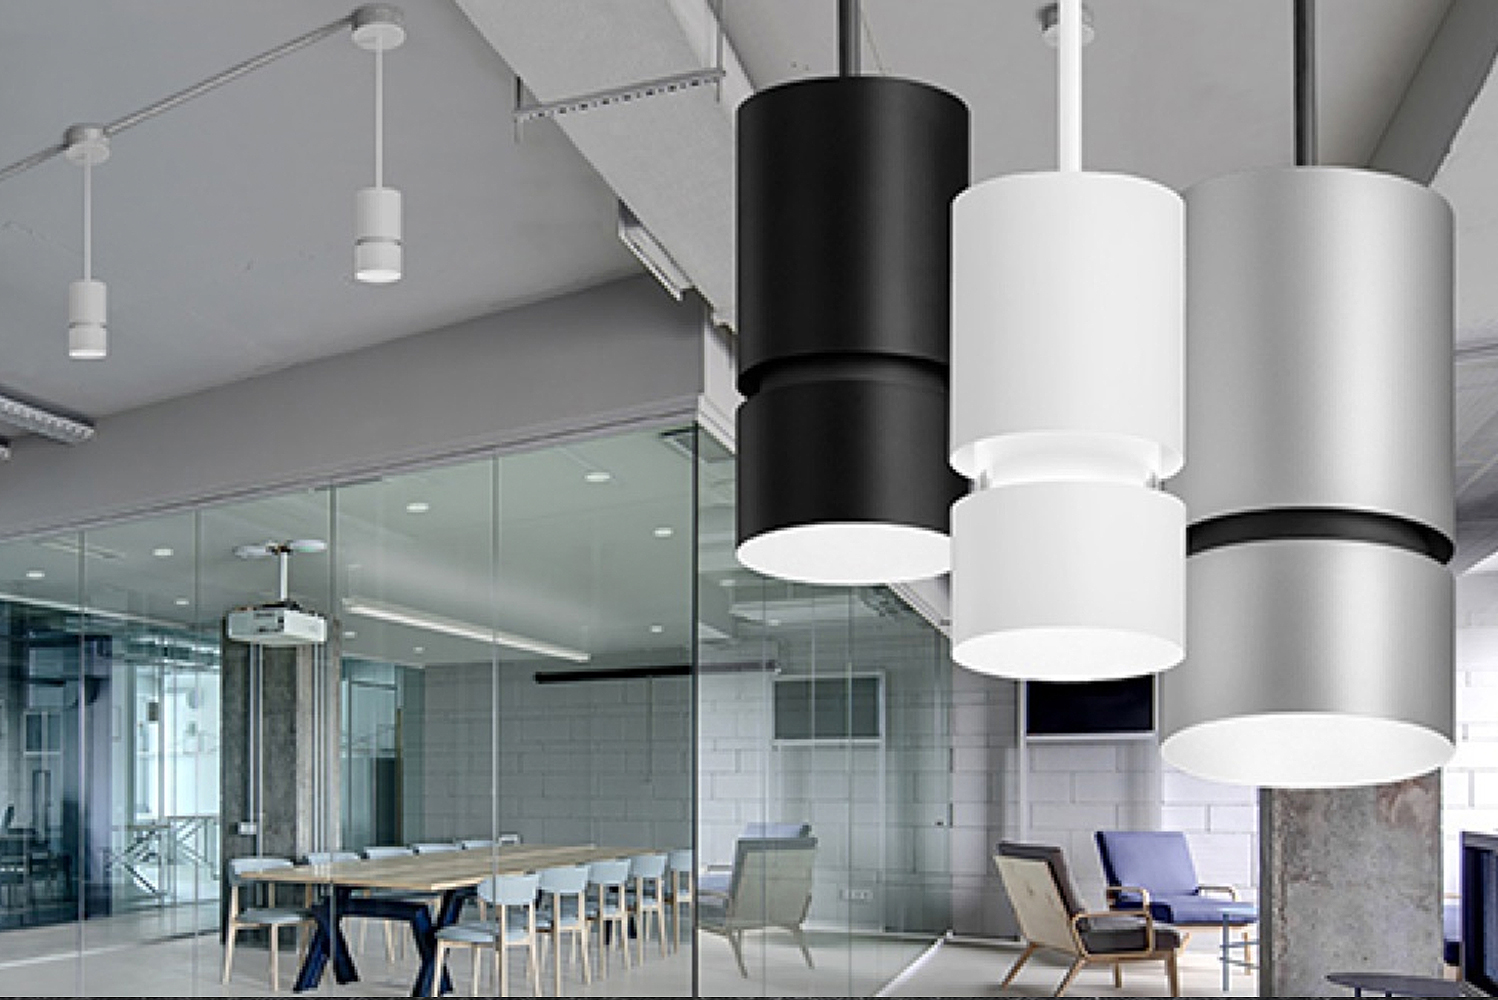 Introducing Focal Point's ID+ cylinder, which is the company's latest addition to its ID family of downlights.